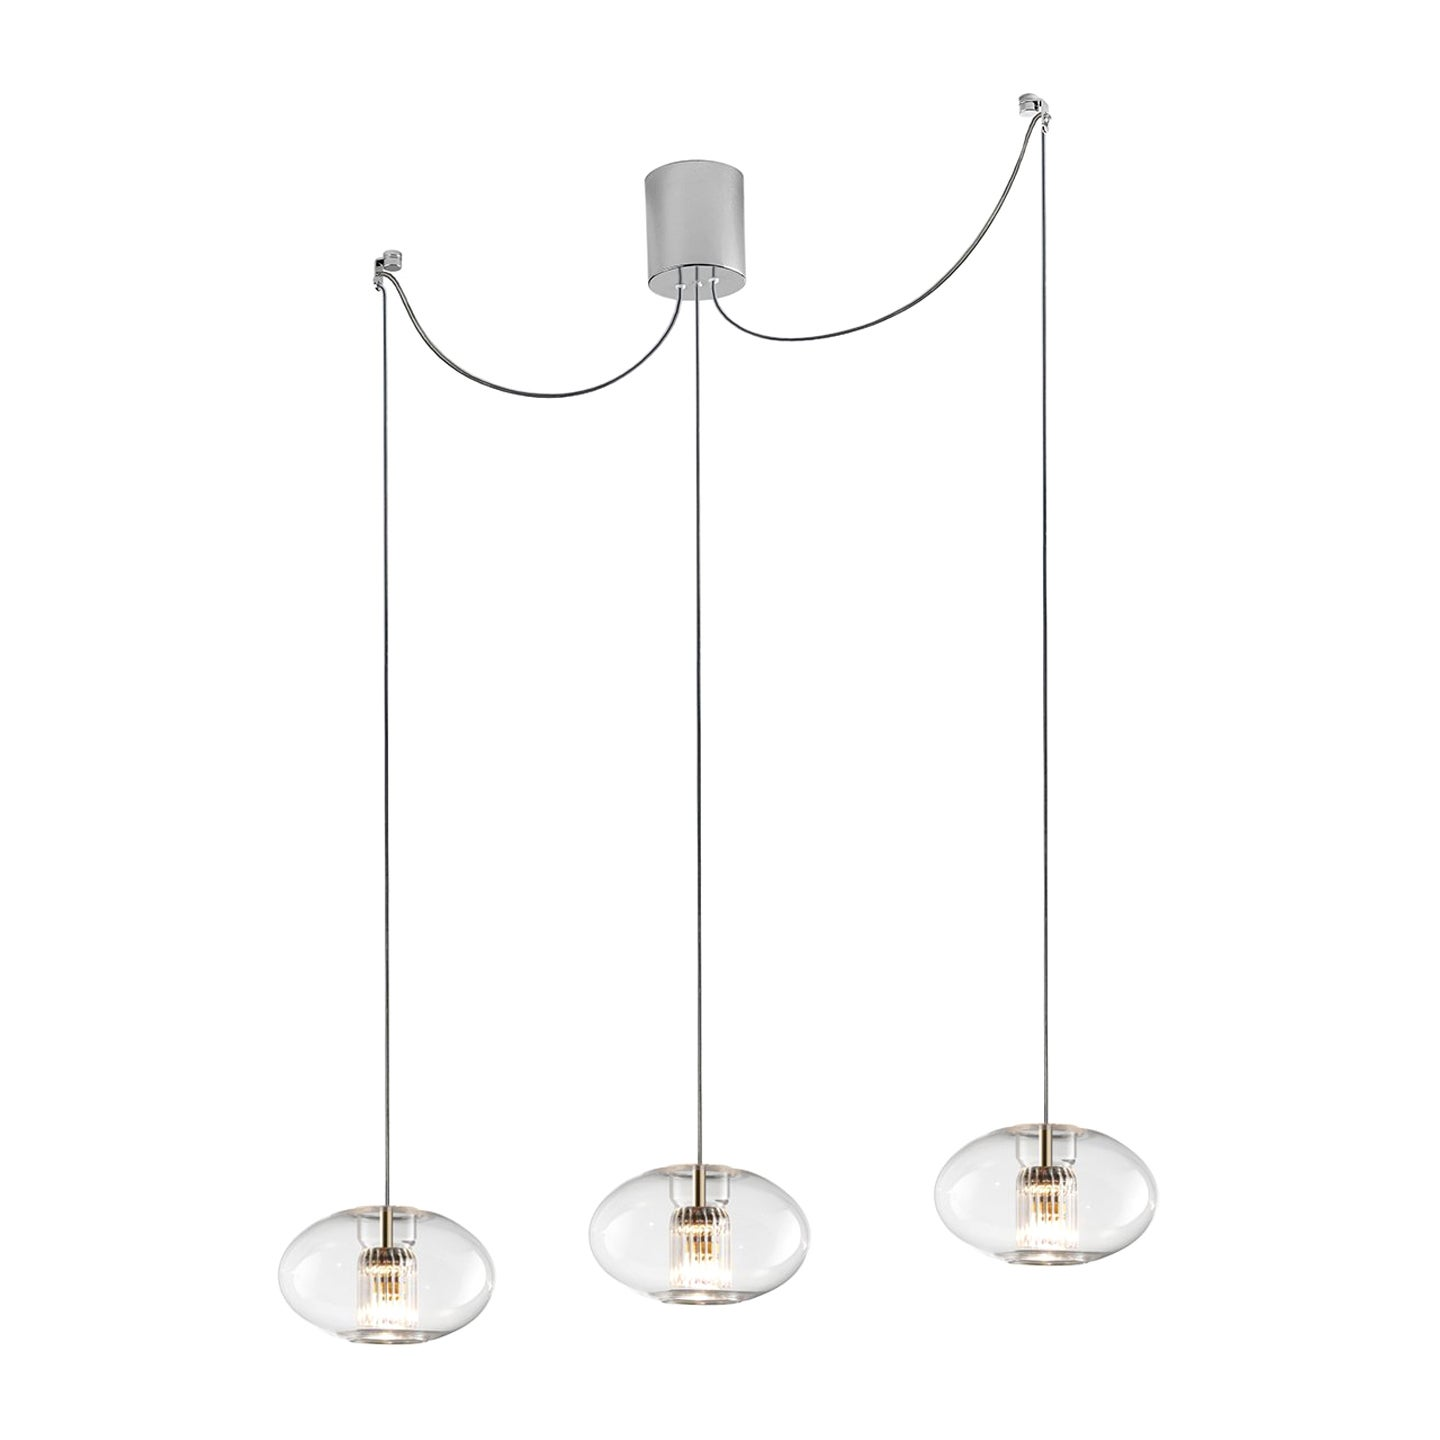 Leucos Fairy S G-D3 Multipoint Pendant Light in Transparent and Chrome